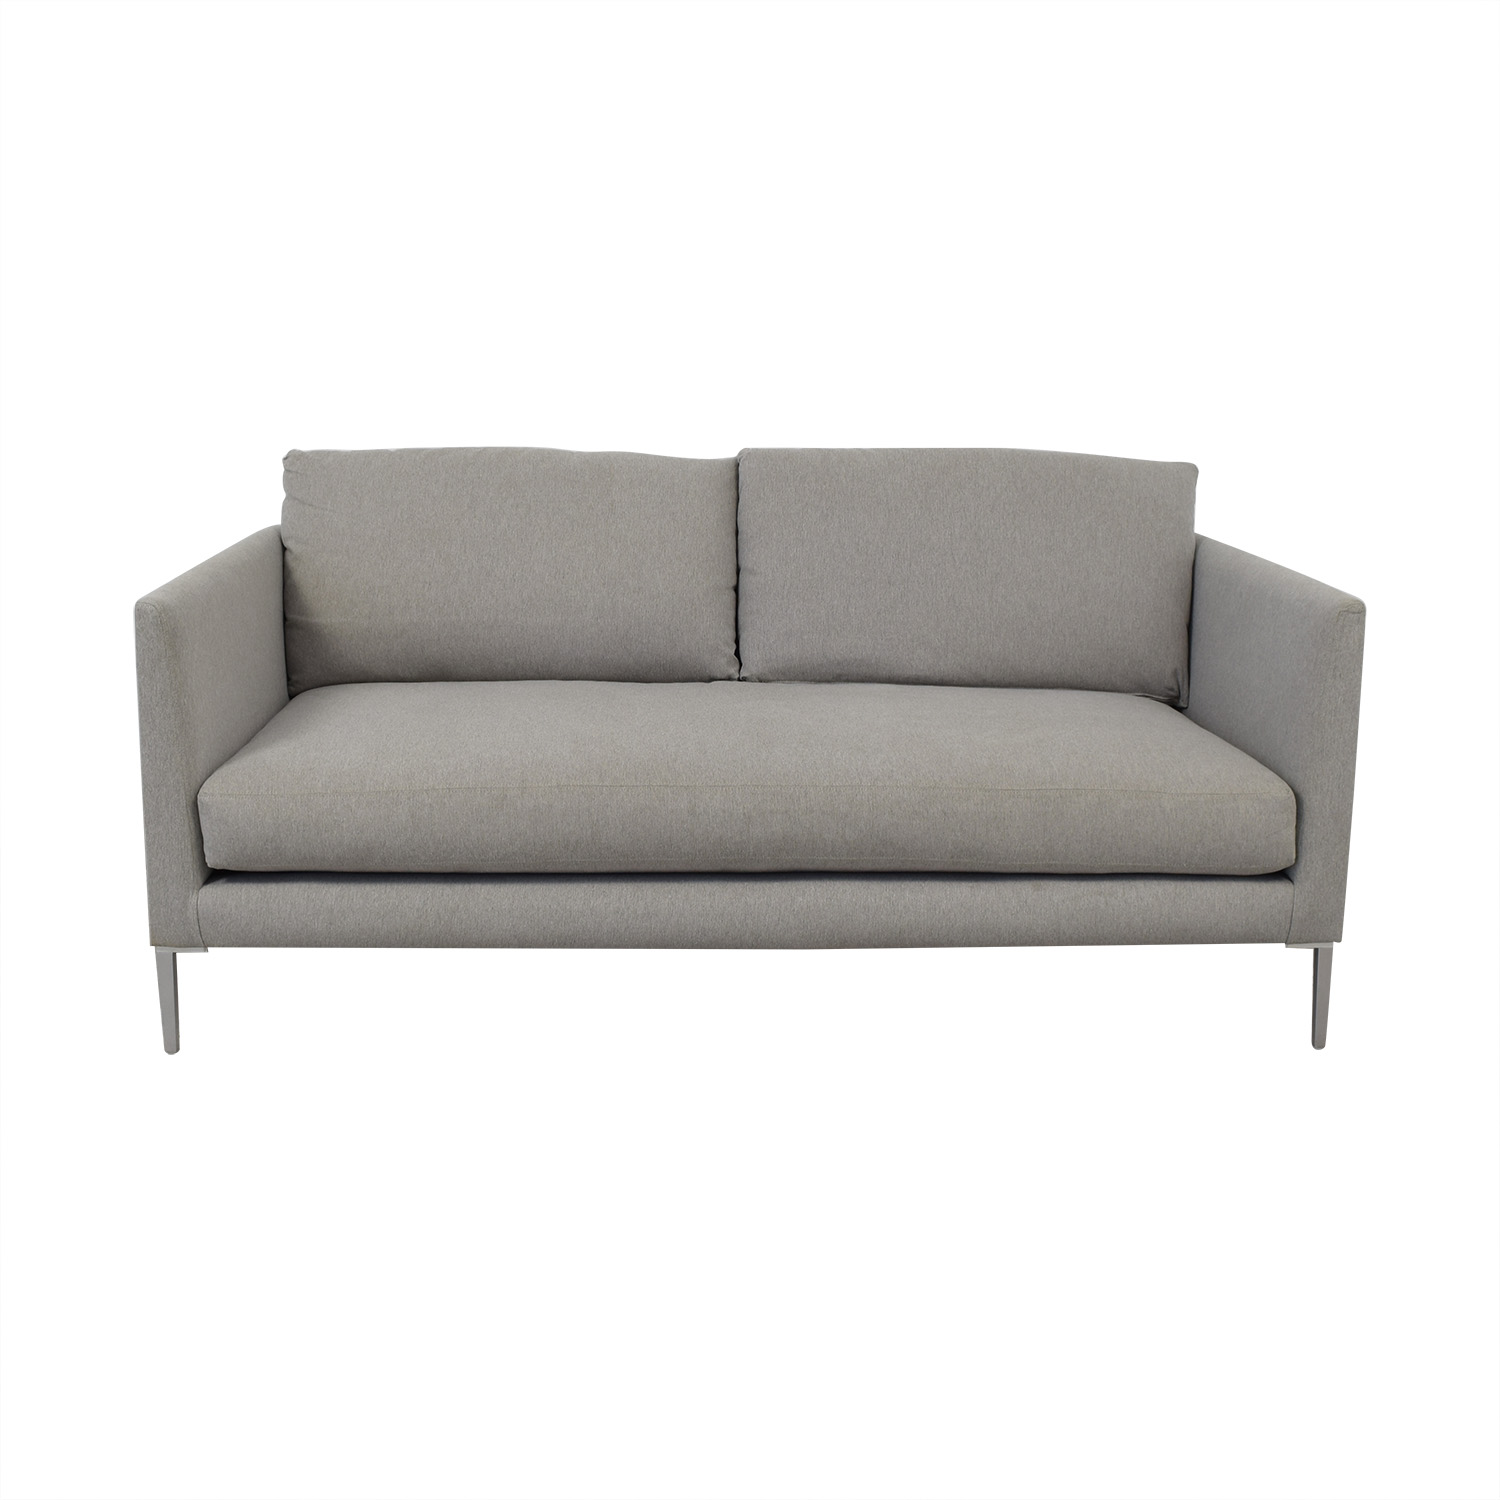 Room & Board Room & Board Janus Sofa coupon